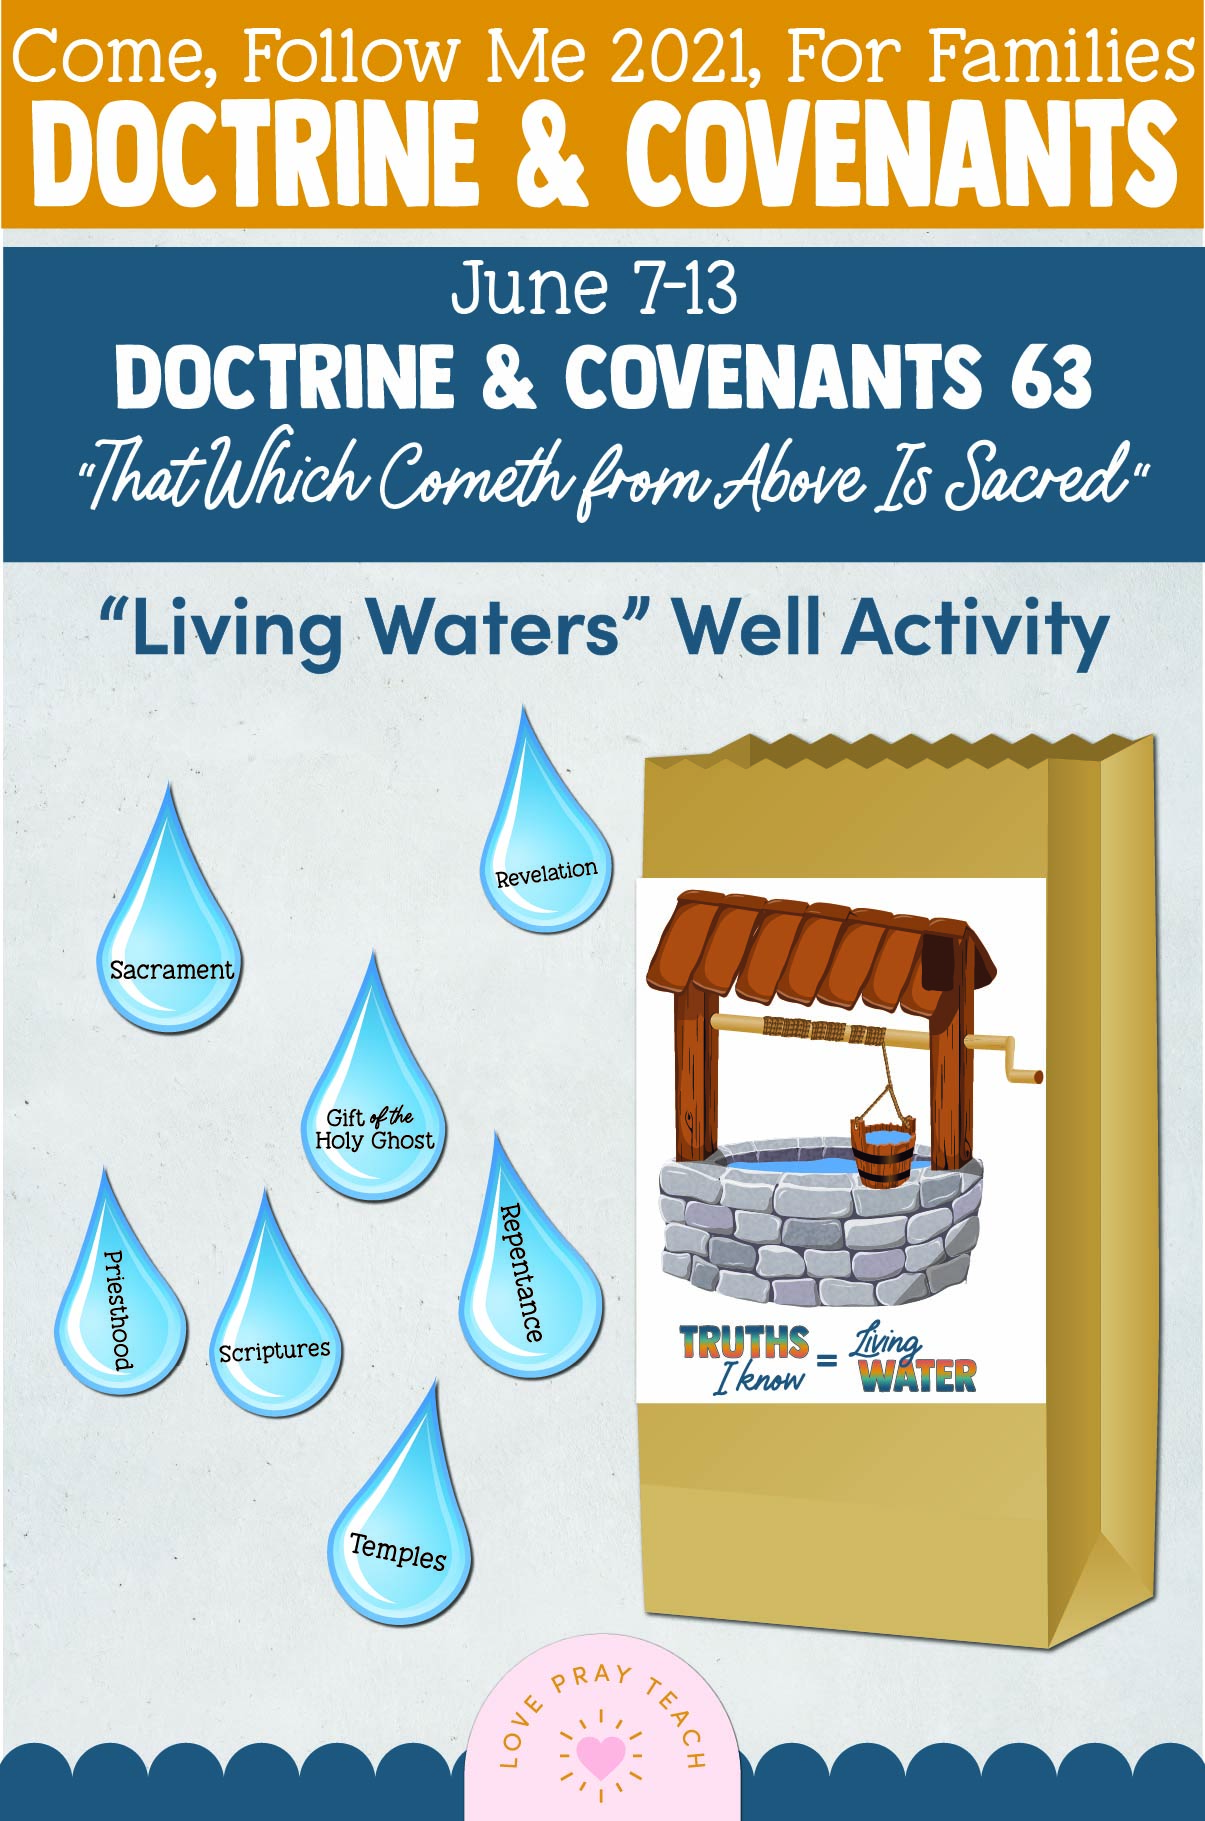 """Come, Follow Me—For Individuals and Families: Doctrine And Covenants 2021, June Week 2 Doctrine and Covenants 63: June 6-13, """"That Which Cometh from Above Is Sacred"""""""